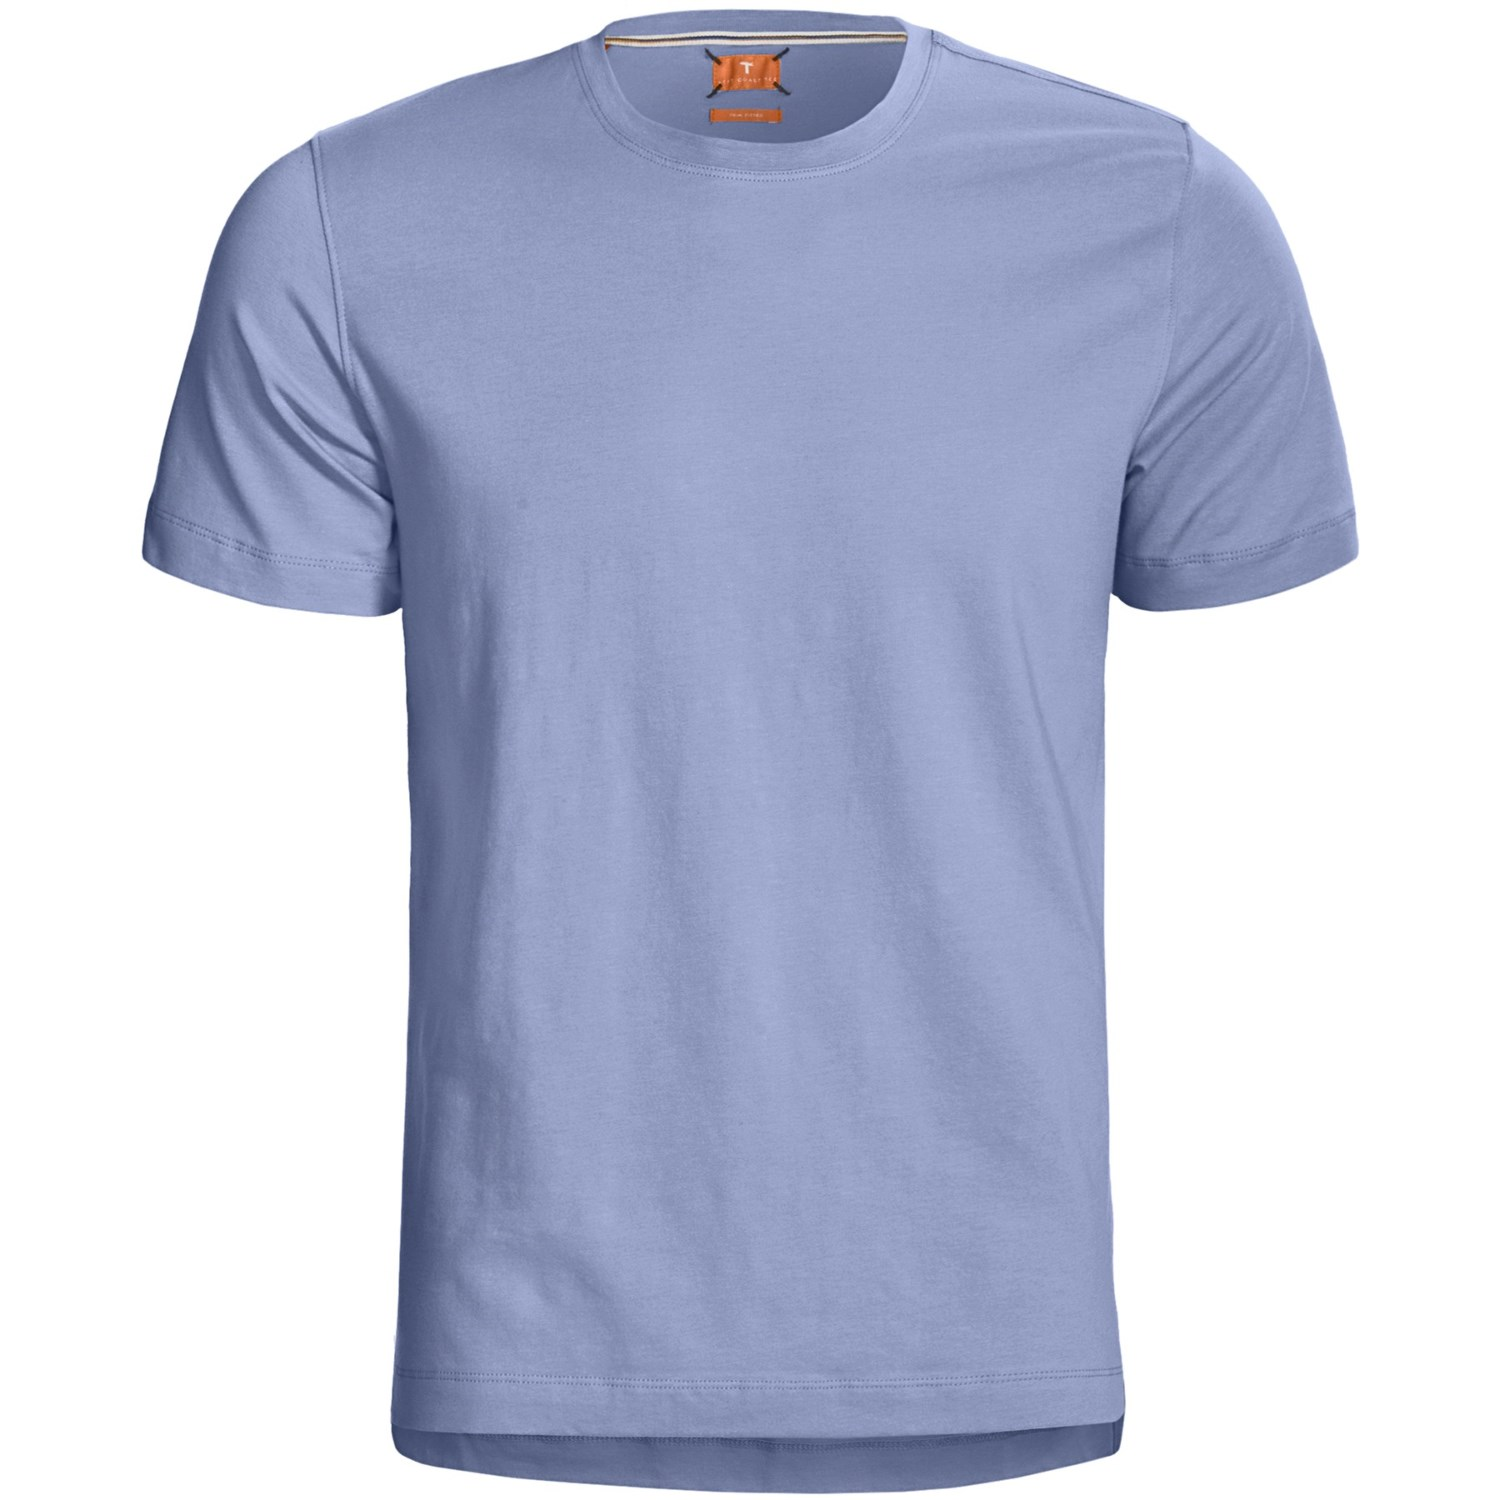 Kirkland signature mens pima cotton t shirt white share for Pima cotton tee shirts